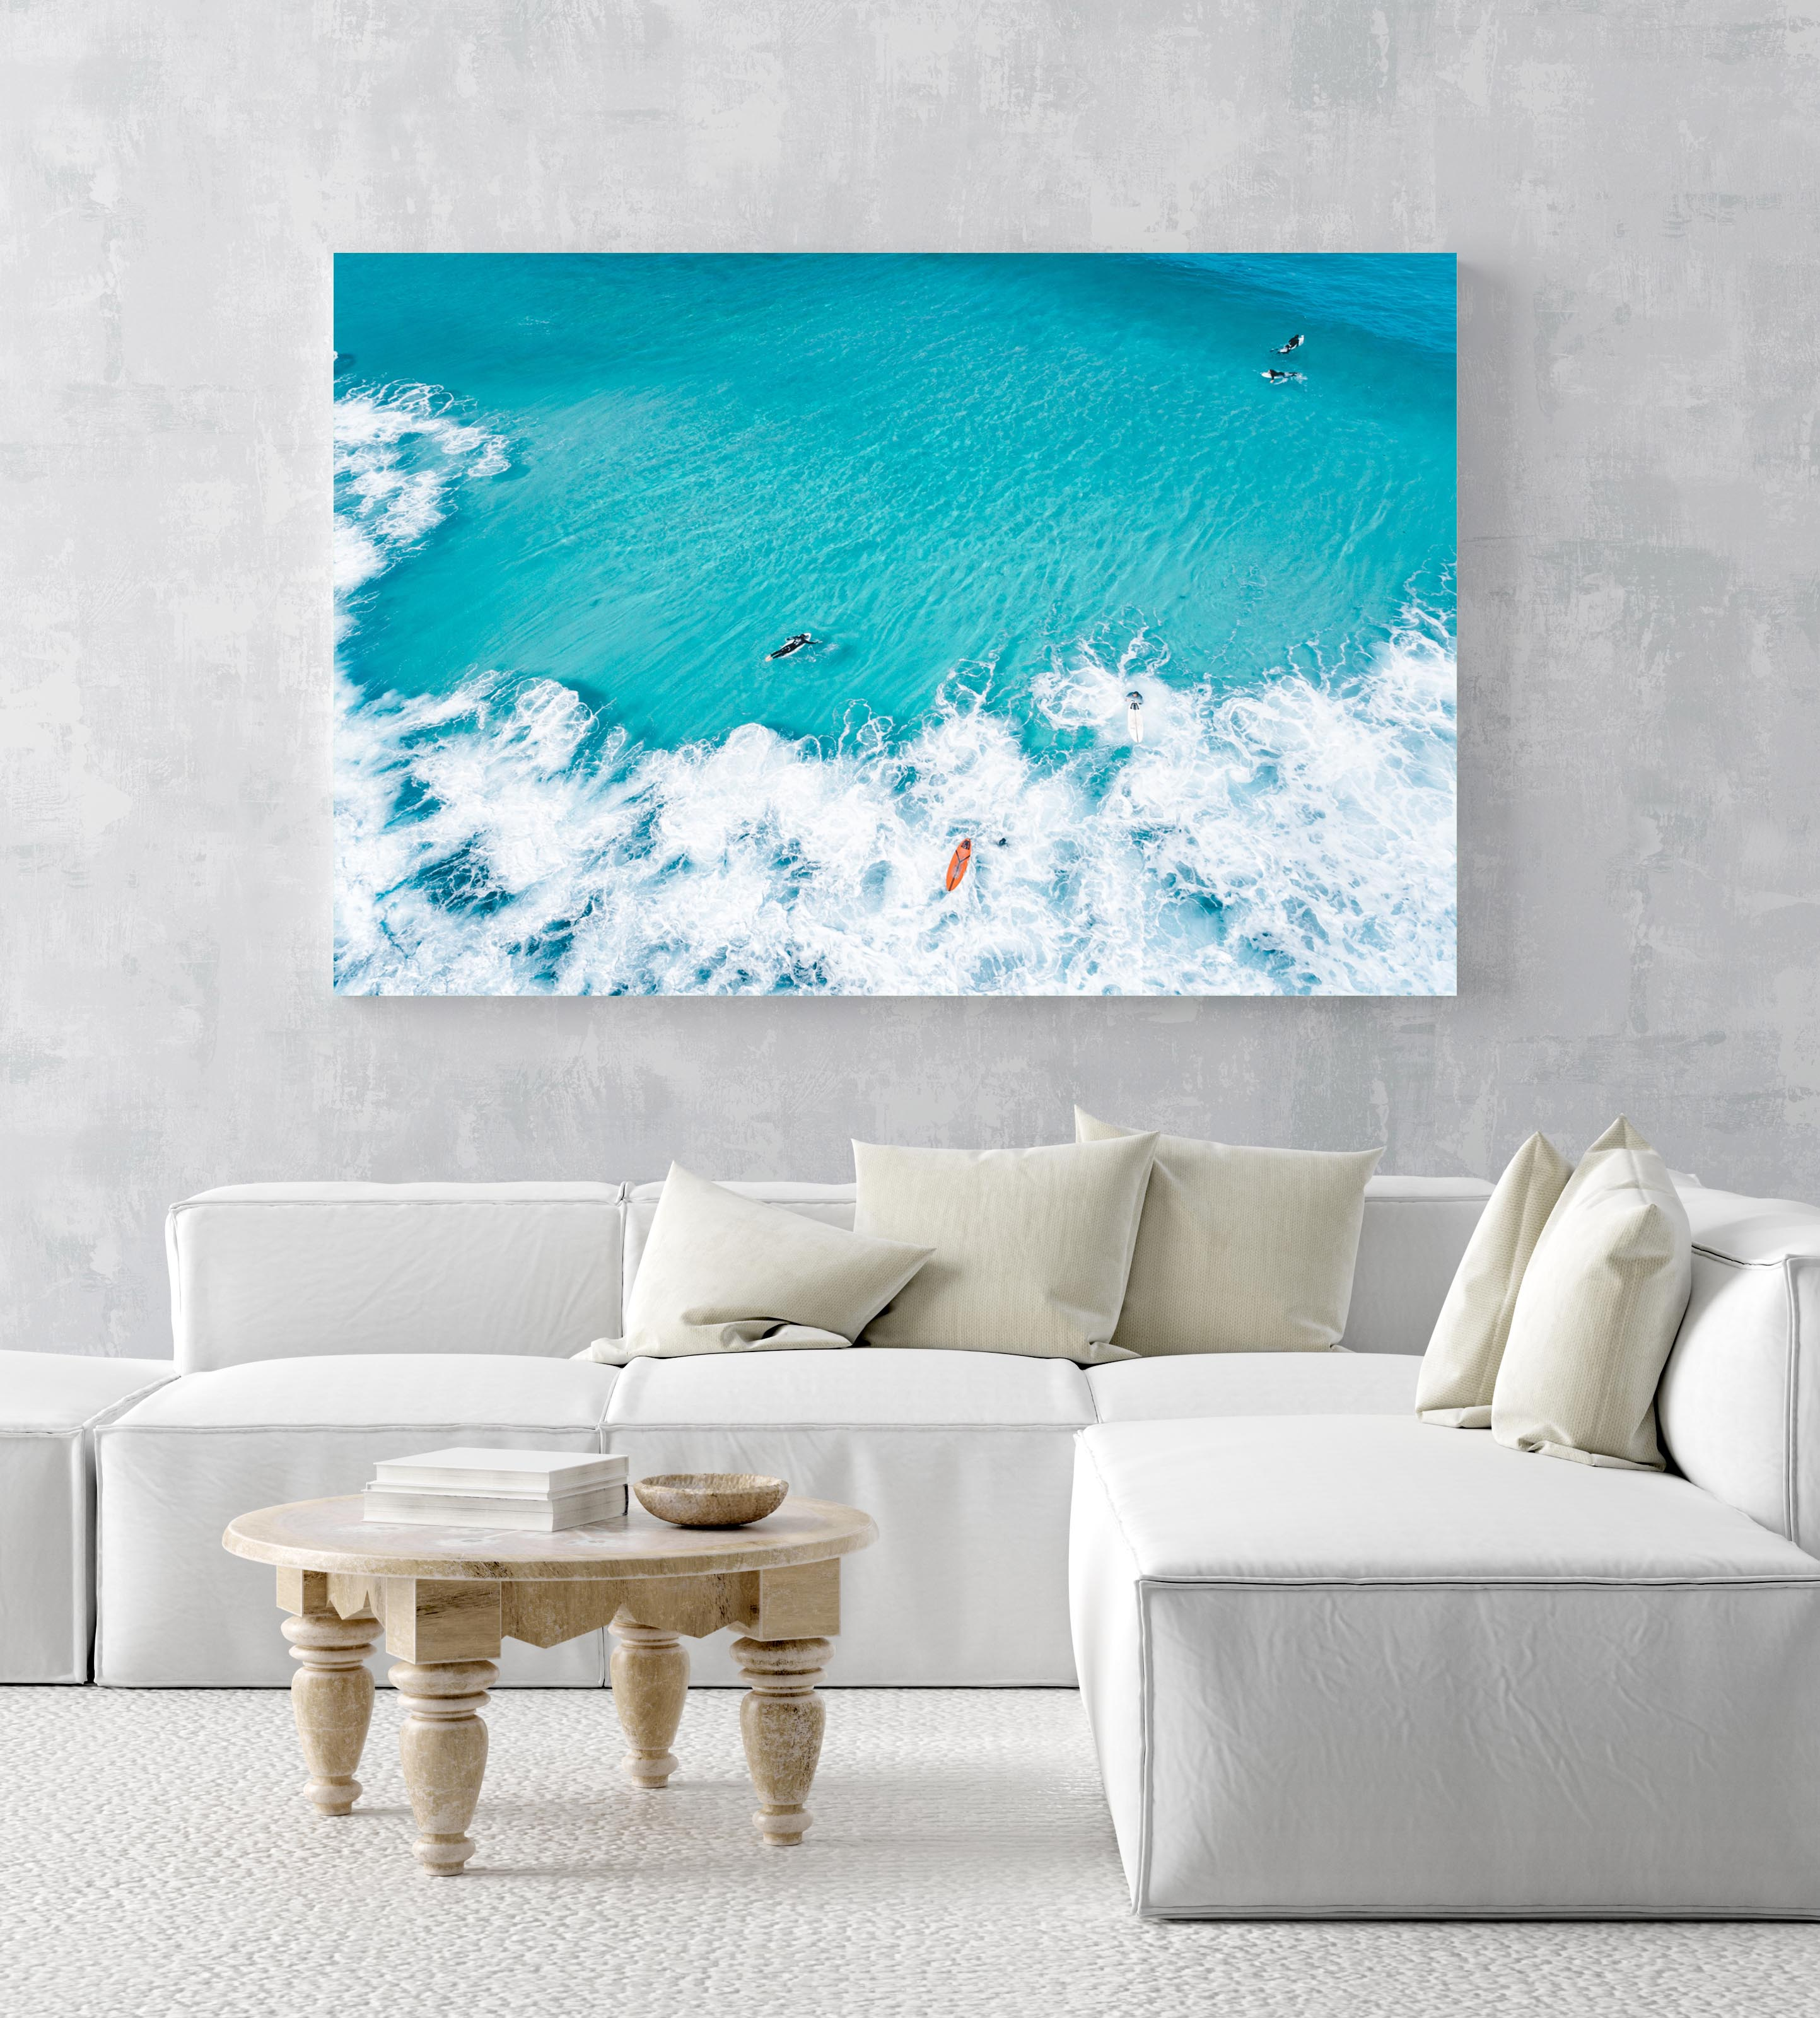 Aerial of surfers and waves in very blue waves in Cape Town in an acrylic/perspex frame